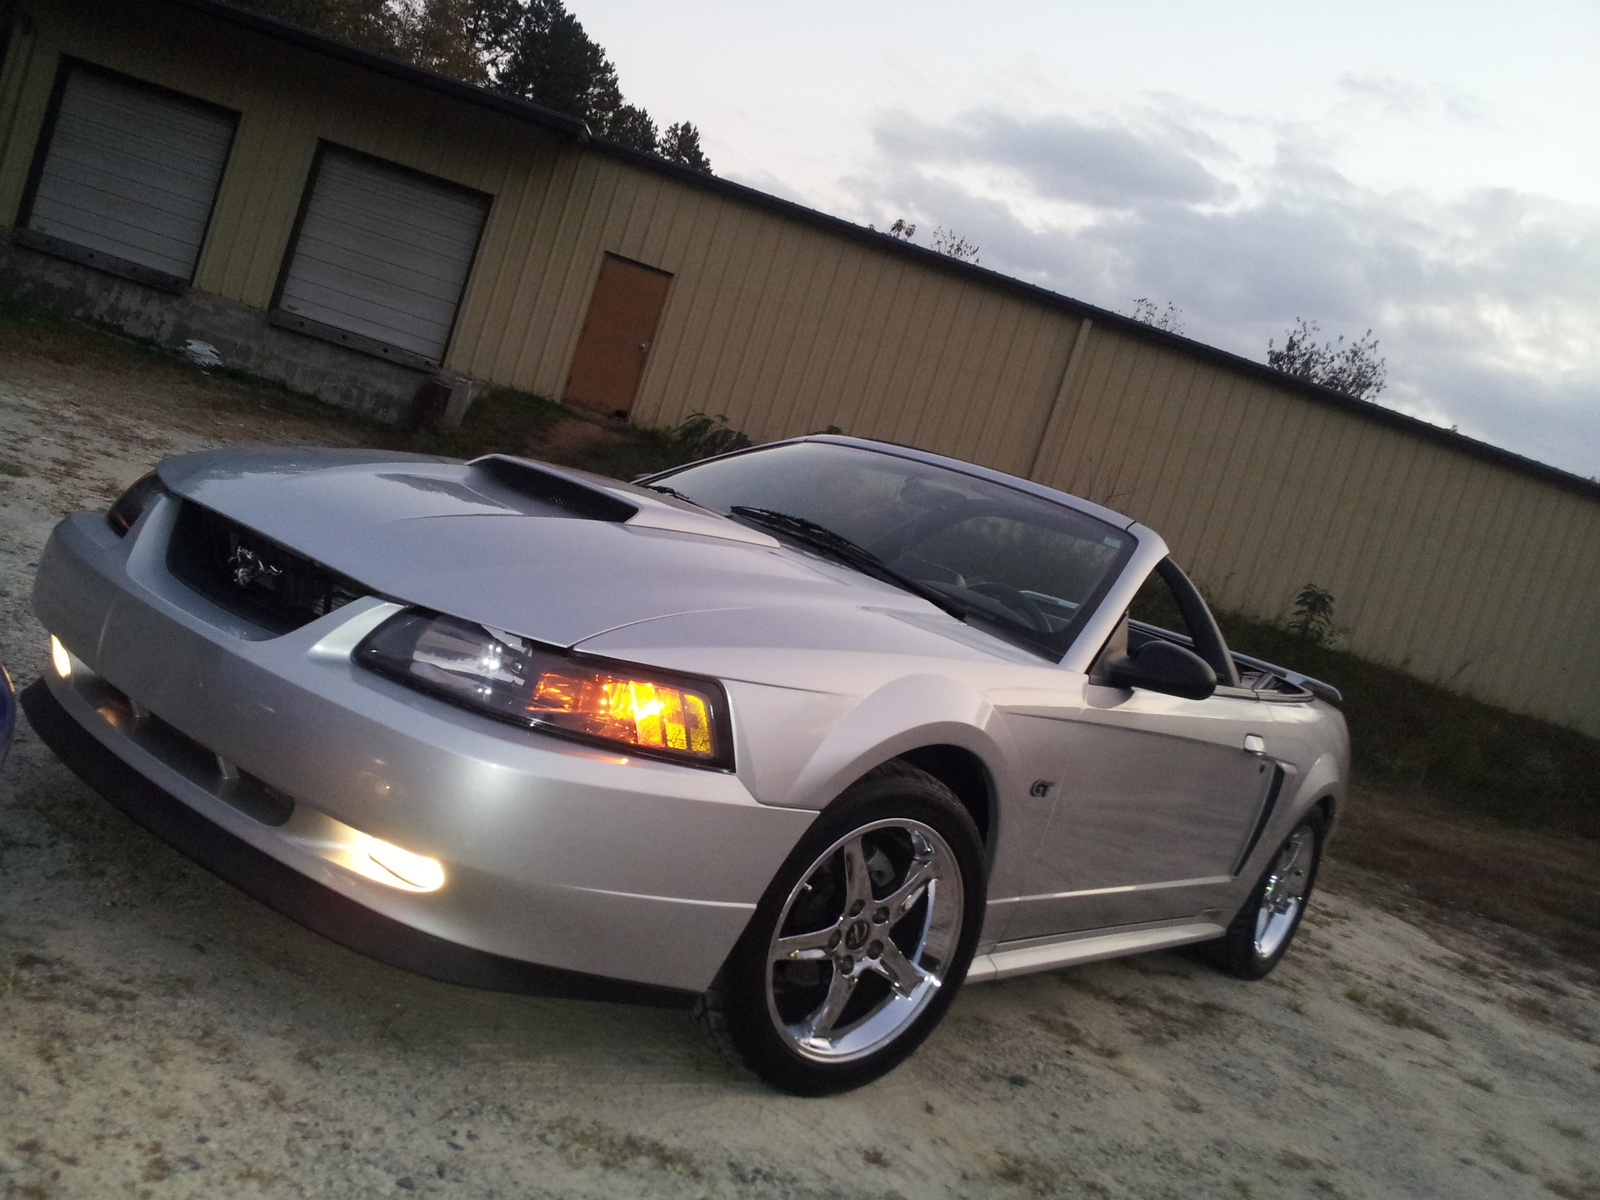 ford mustang gt deluxe convertible #3